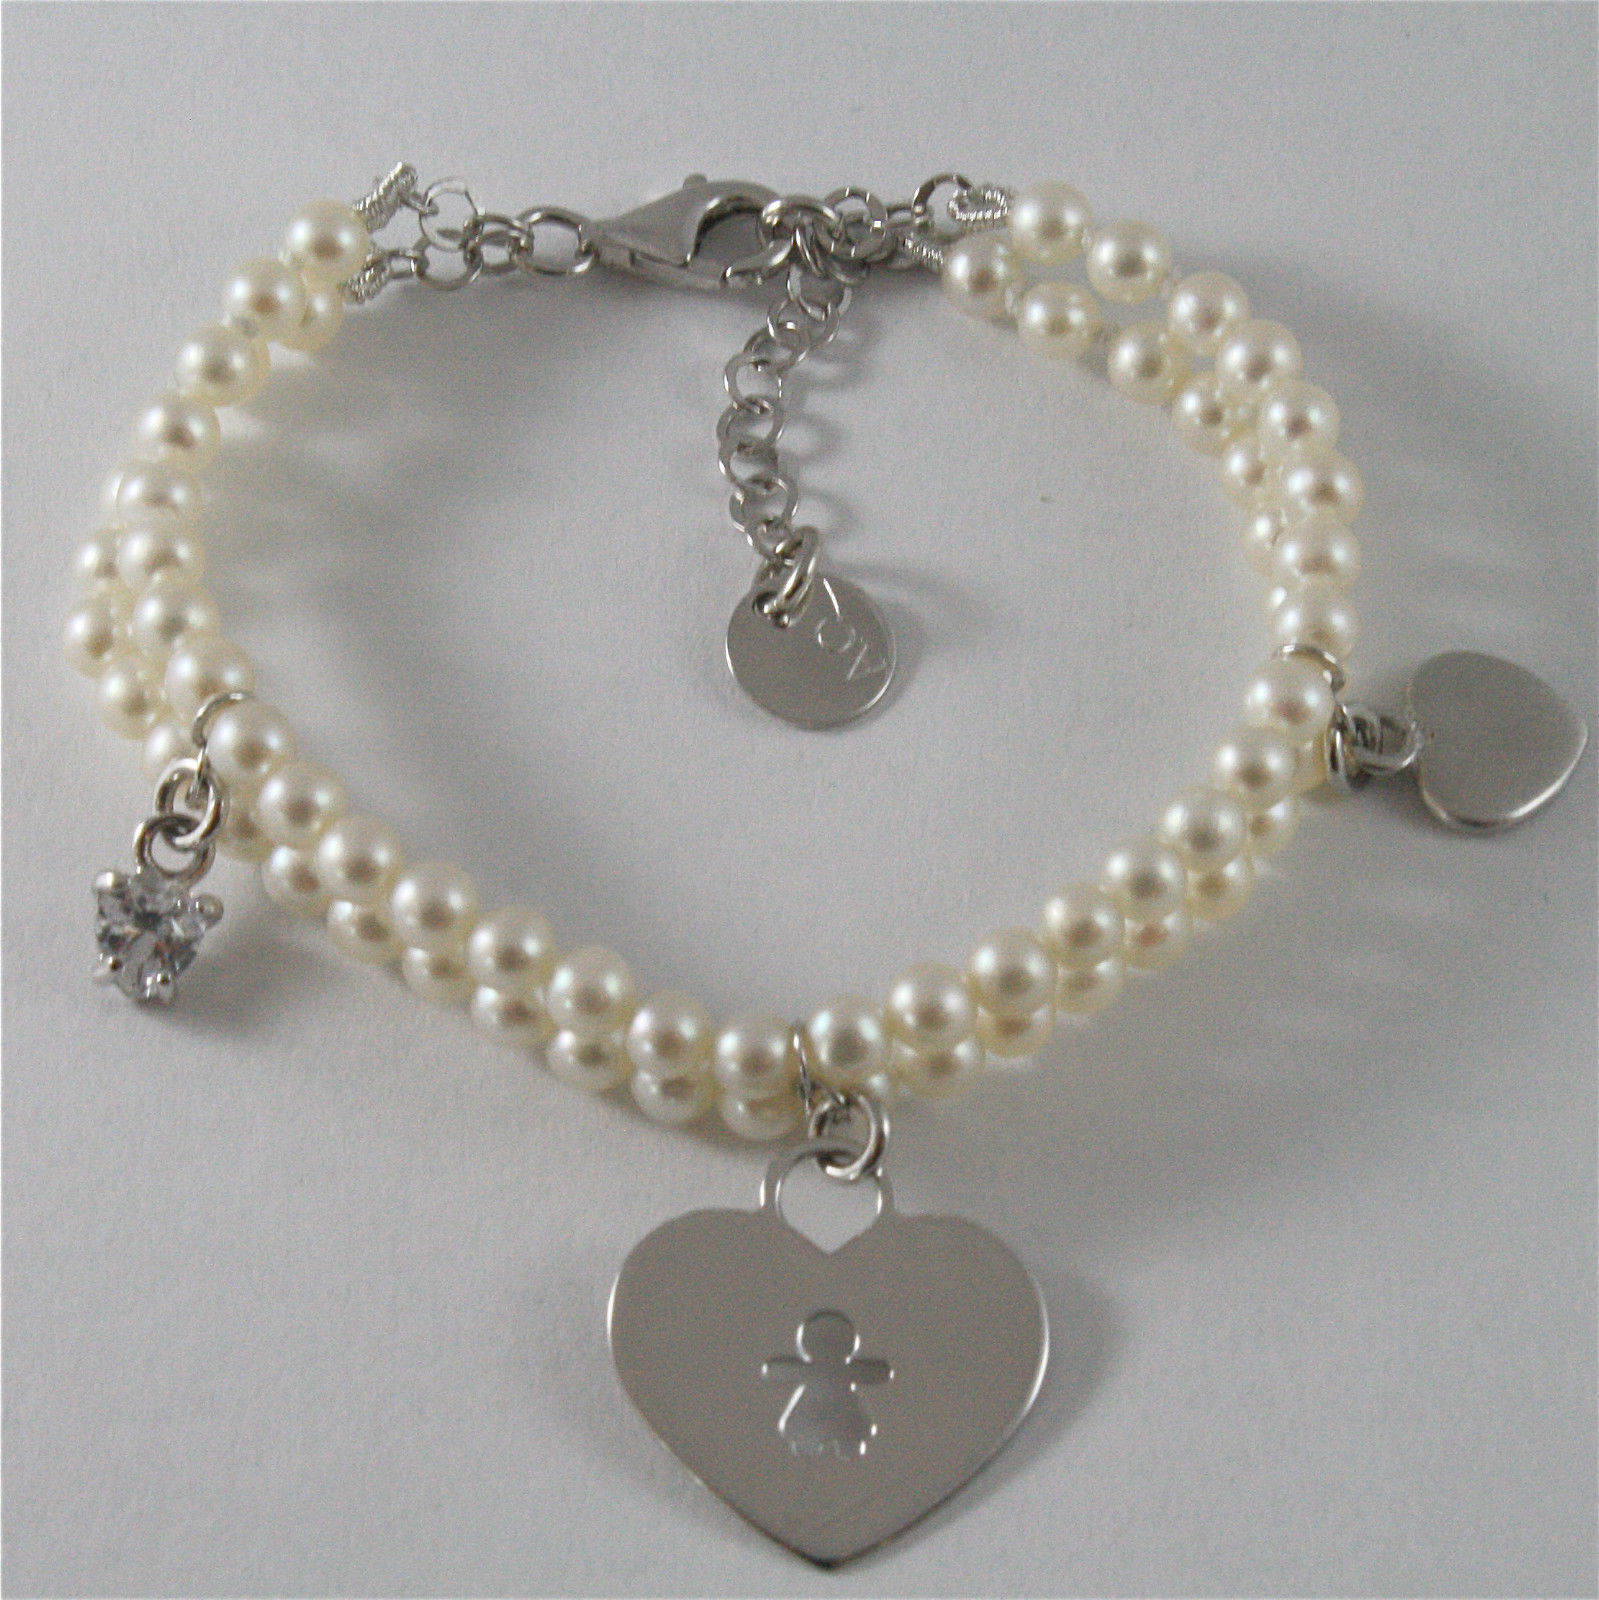 Bracelet in Sterling Silver 925 Rhodium Two Wires Pearls Charm Baby Hearts Cu...